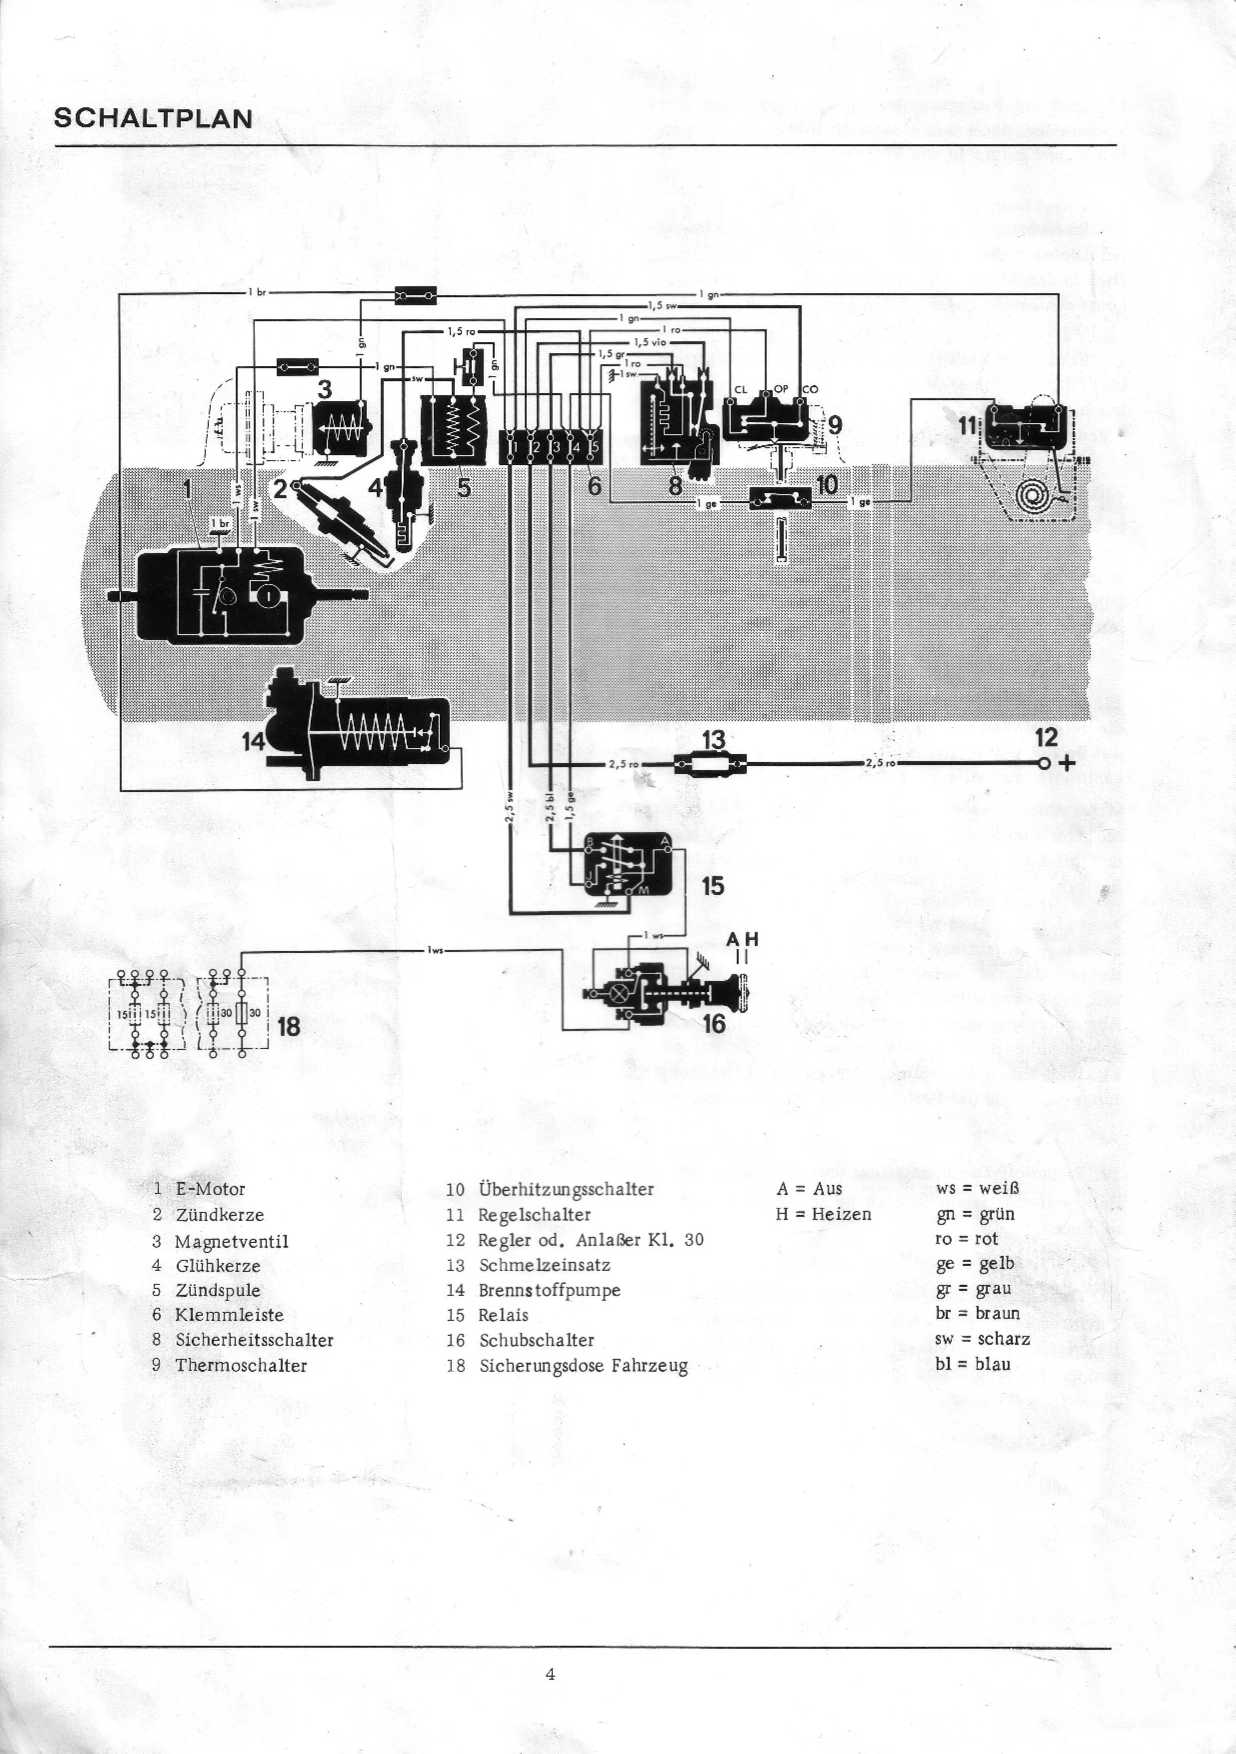 1970 10 eberspaecher bn4 wiring diagram?resize\\\\\\\=665%2C944 1927 buick wiring diagram wiring diagrams 2010 Buick Lacrosse Wiring-Diagram at mifinder.co